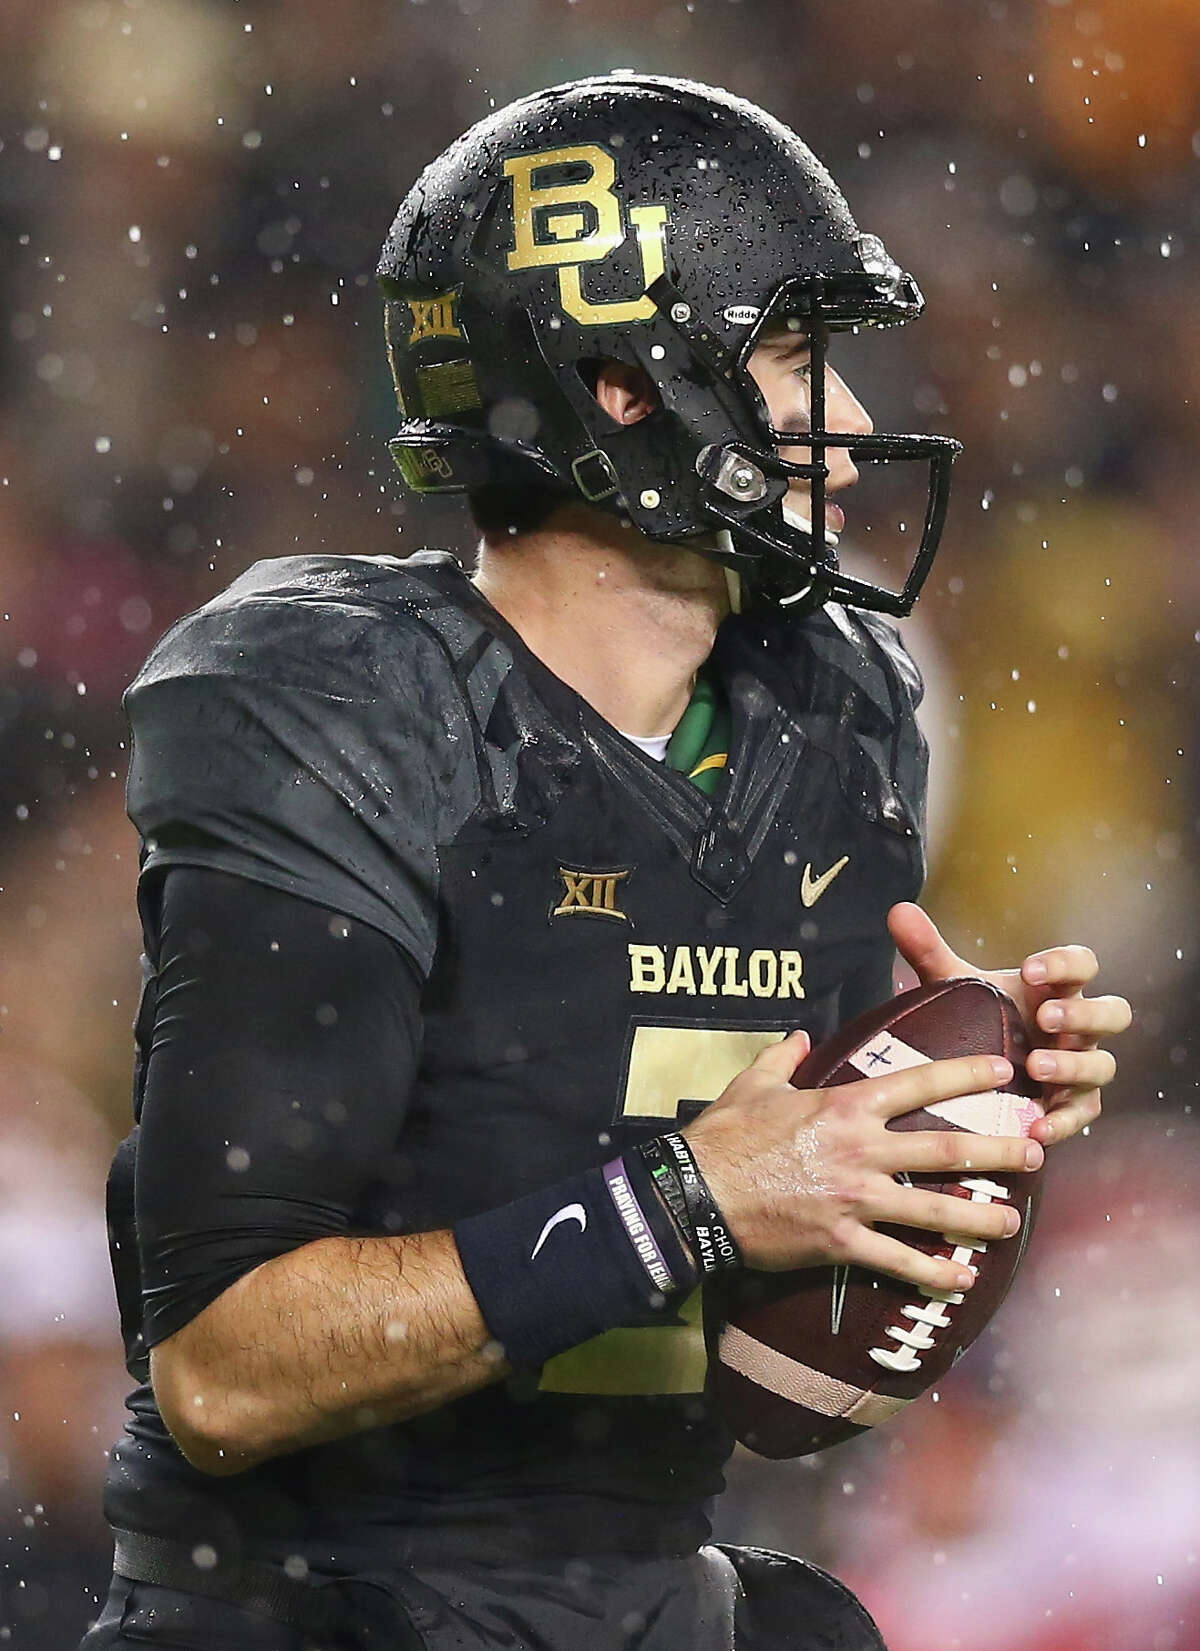 WACO, TX - NOVEMBER 14: Jarrett Stidham #3 of the Baylor Bears throws against the Oklahoma Sooners in the first quarter at McLane Stadium on November 14, 2015 in Waco, Texas. (Photo by Ronald Martinez/Getty Images)